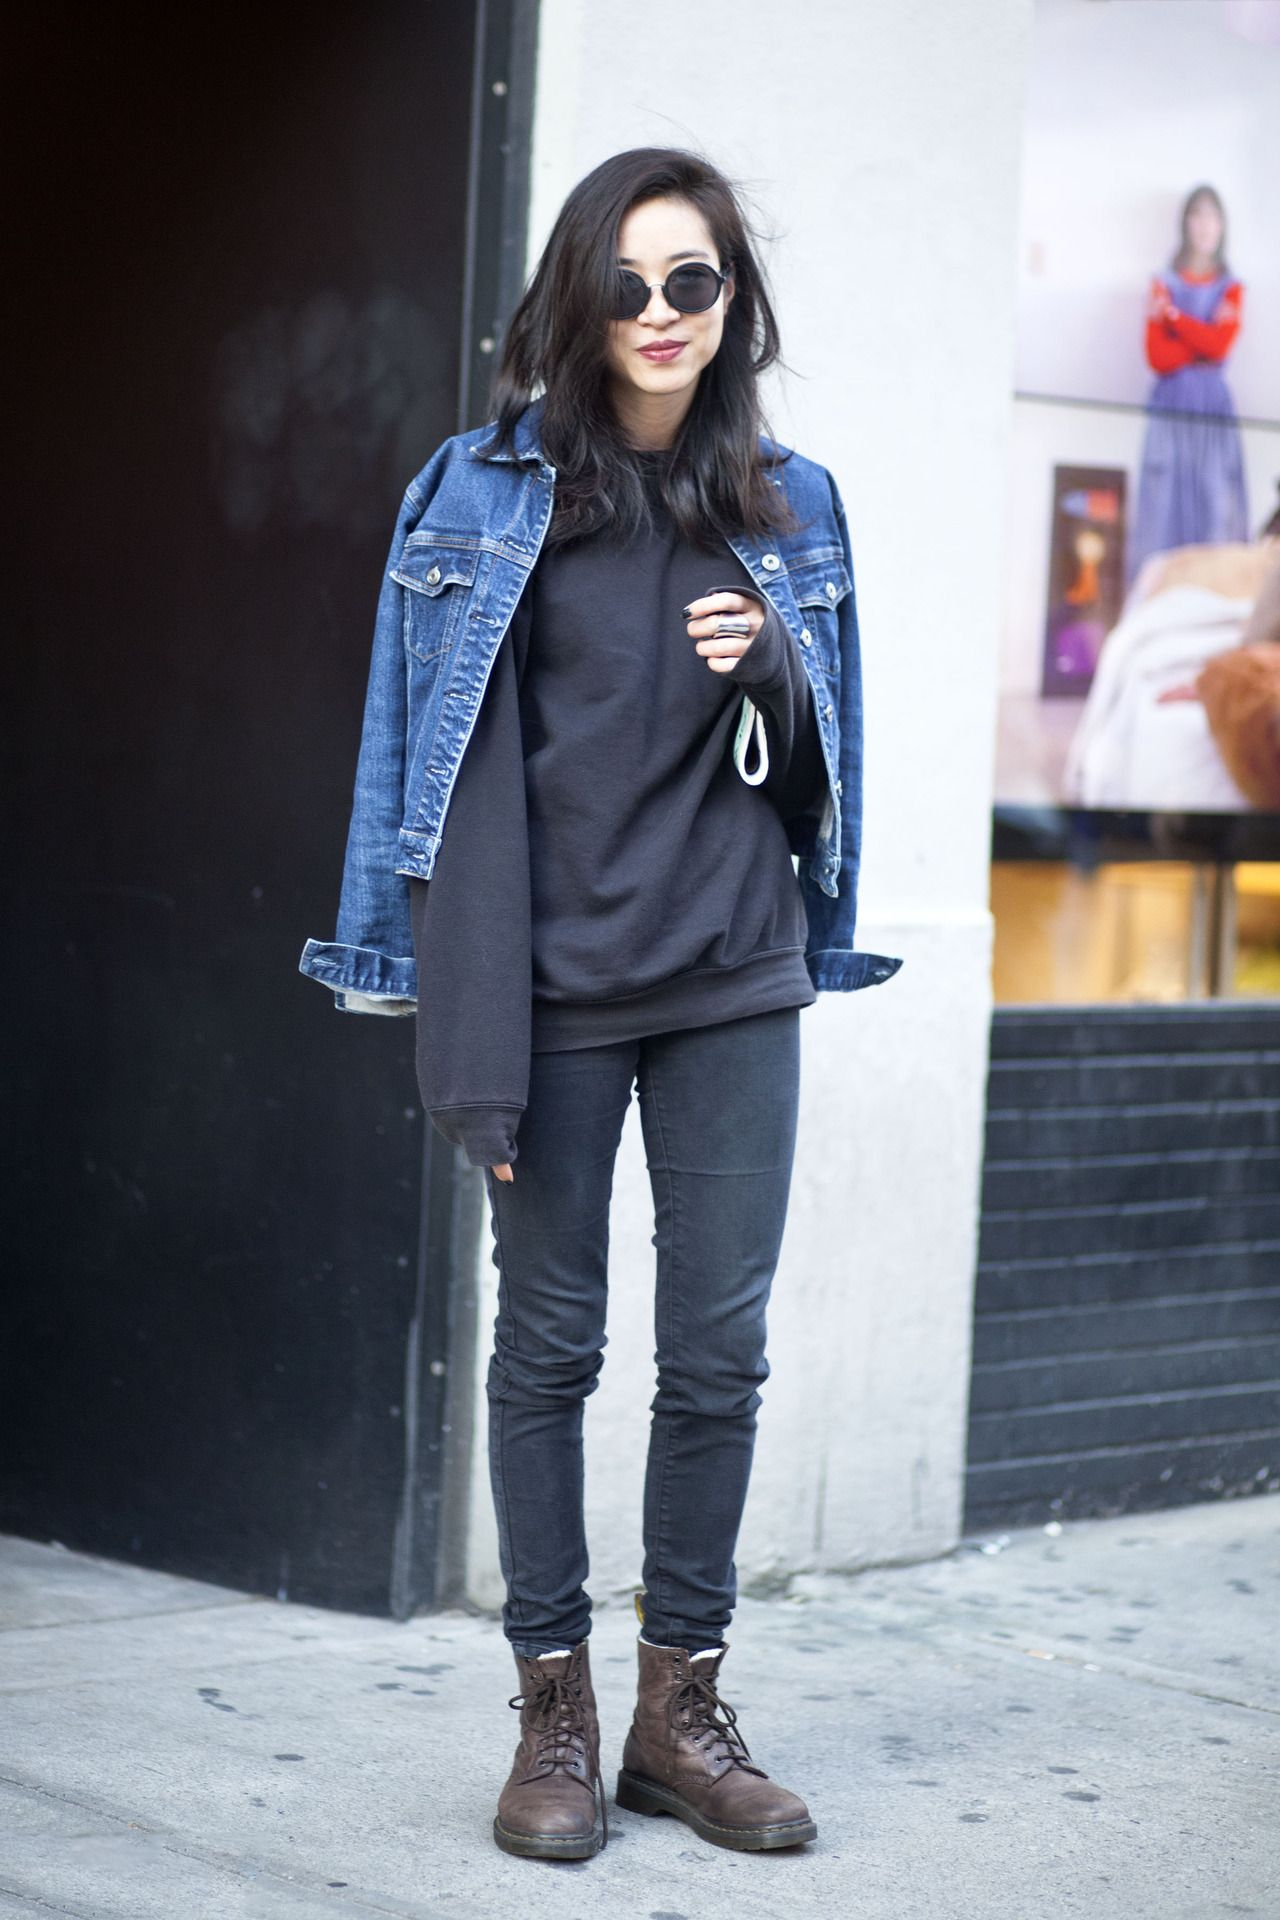 Qweary Female Stud Skater Style | Black Denim Denim Jackets And Skinny Jeans